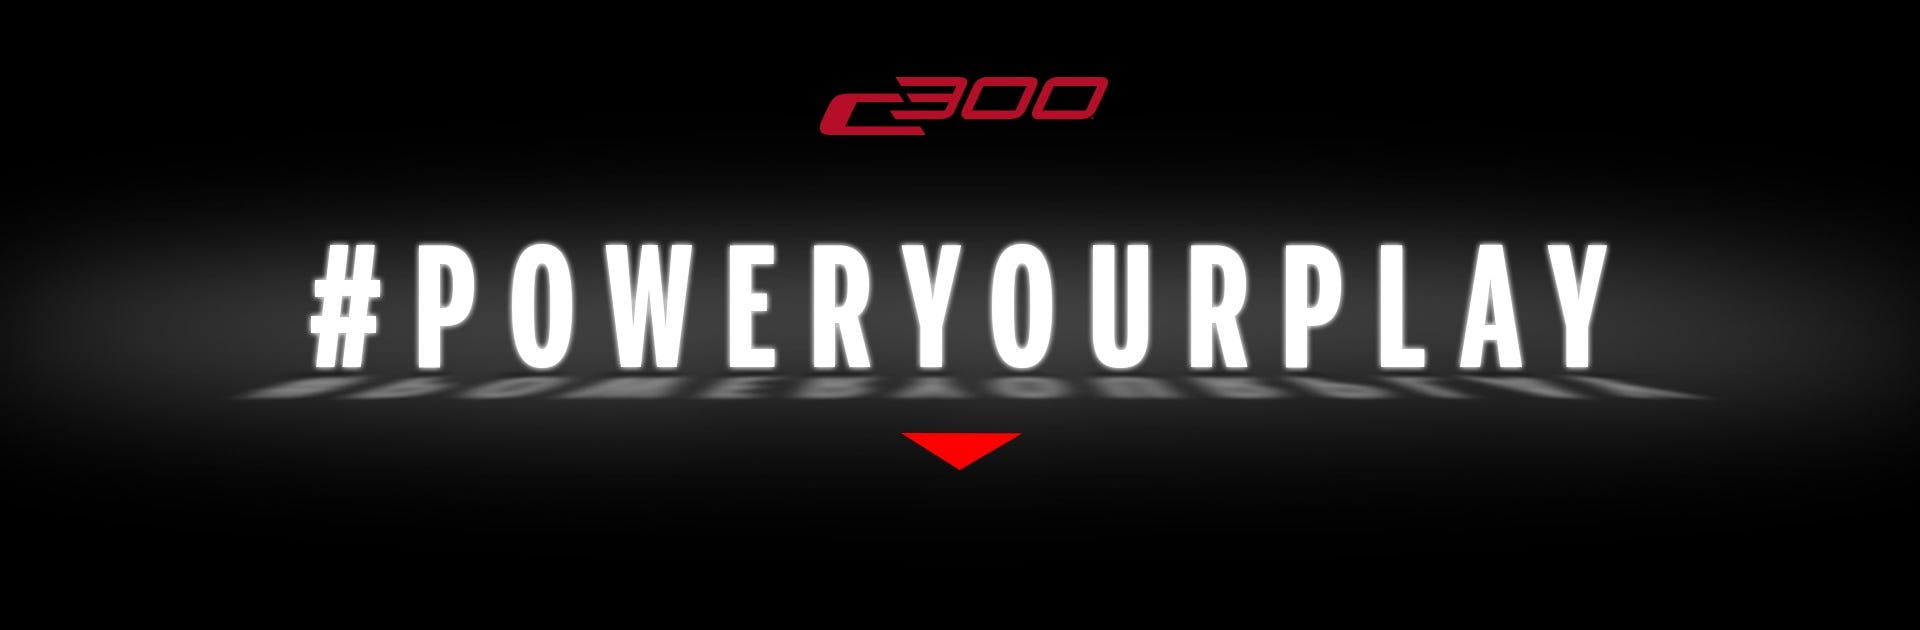 Power Your Play - C300 Irons